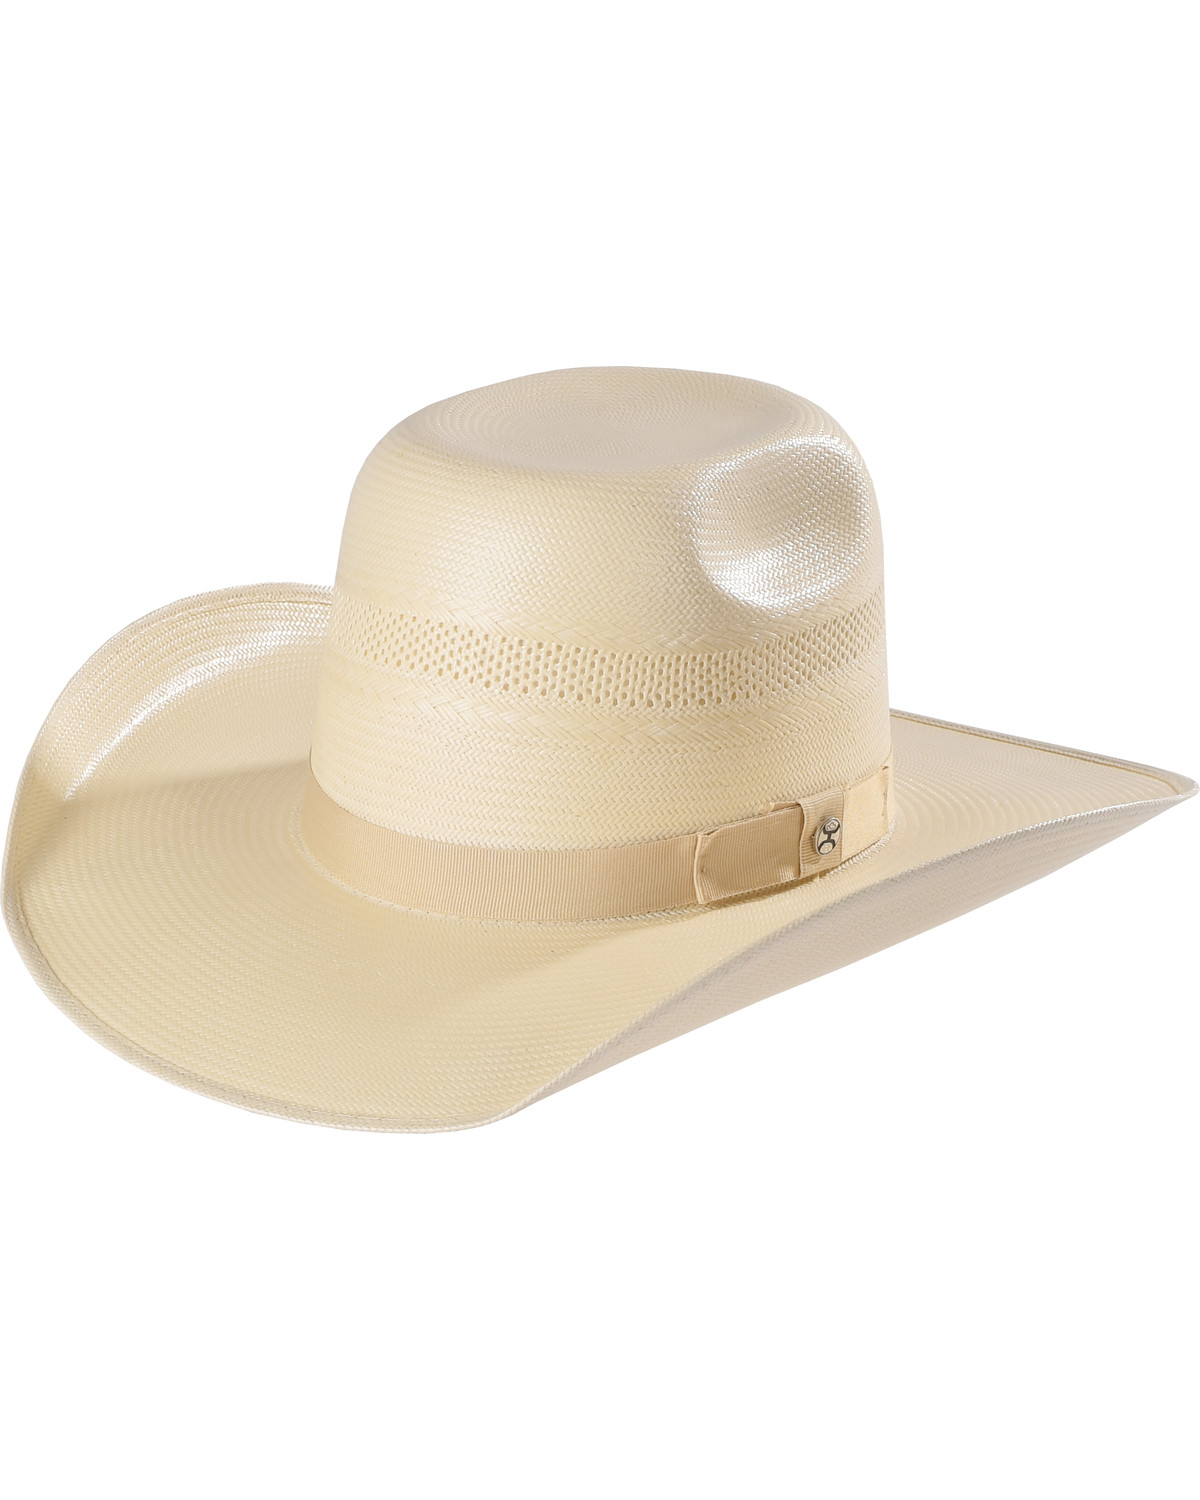 Hooey by Resistol Men s Natural Santa Fe Straw Cowboy Hat  08b204010e2